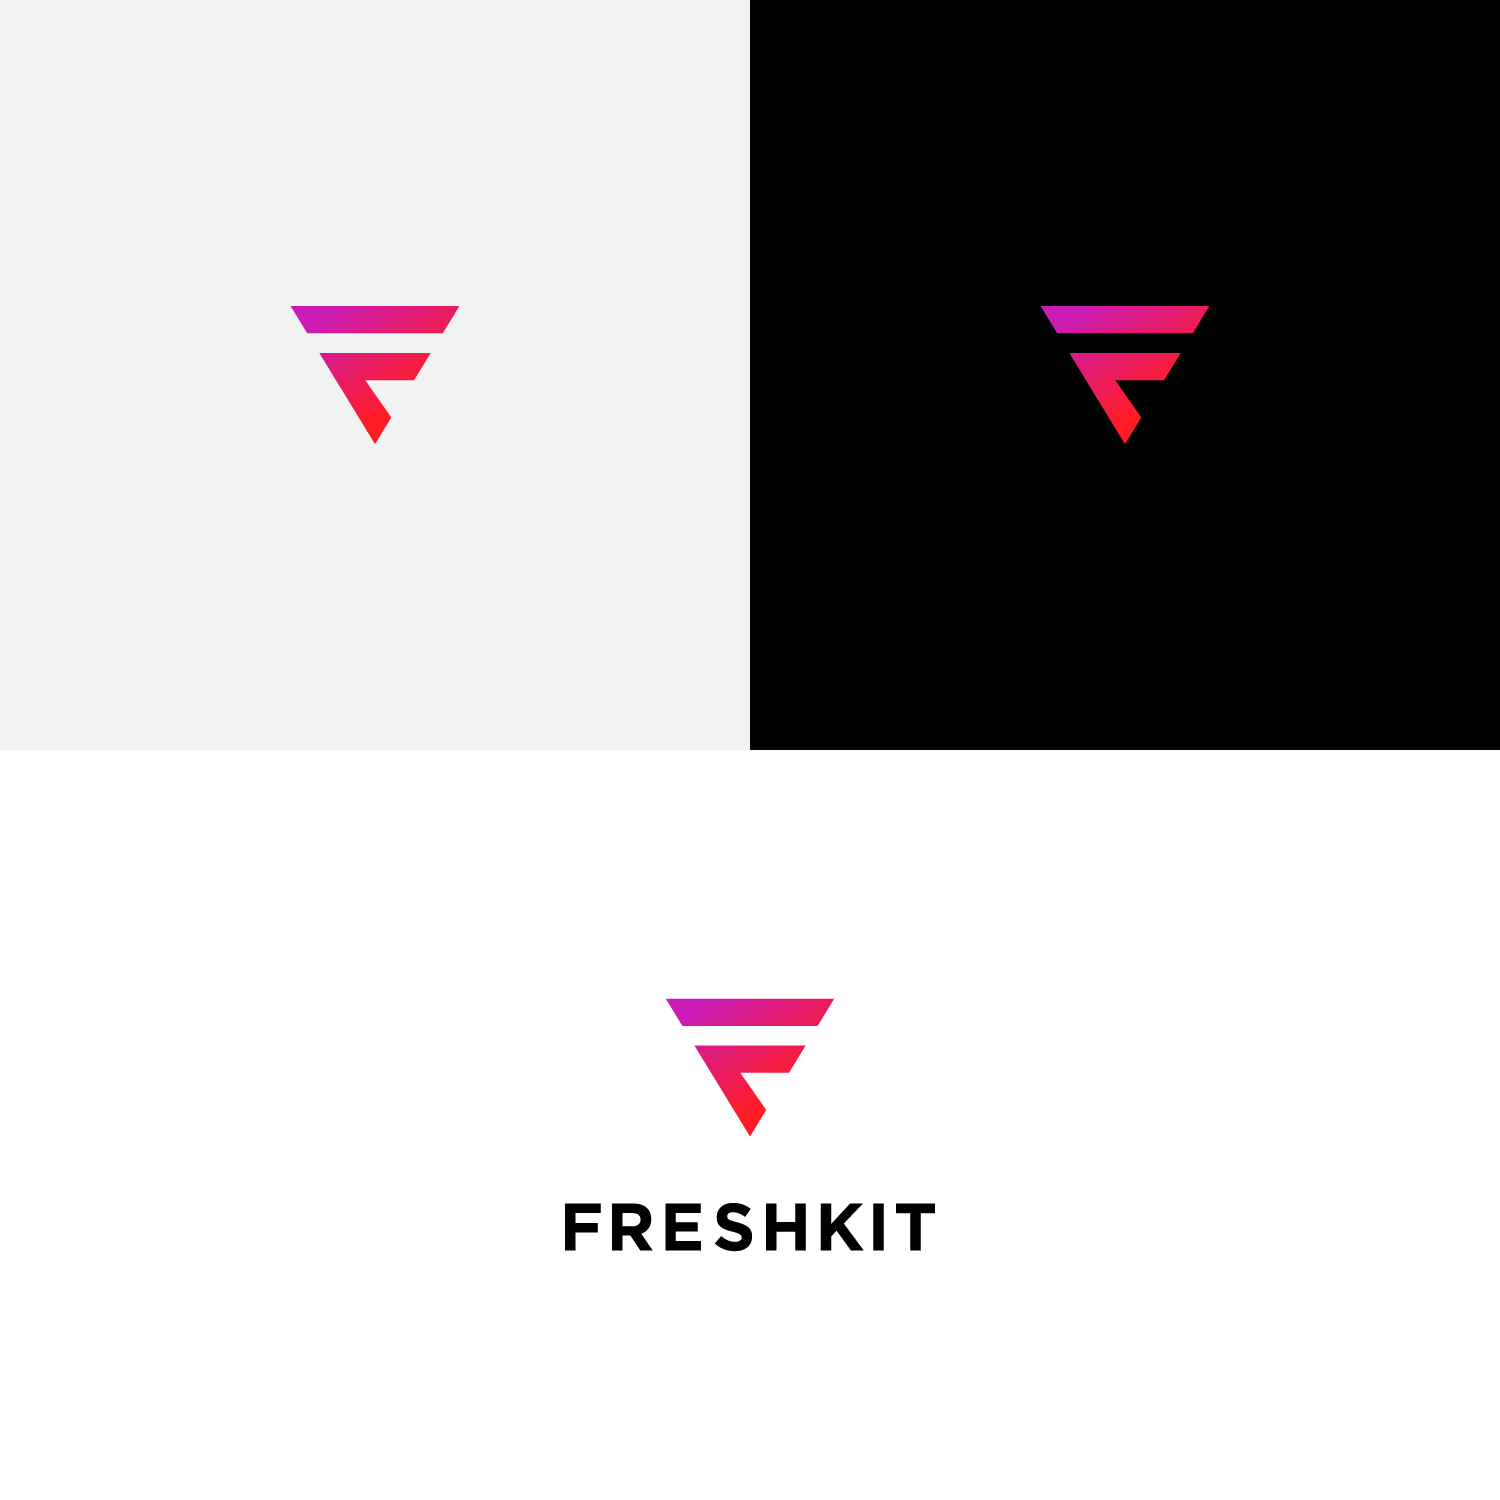 Playful Colorful Fashion Logo Design For Freshkit By Pood Creative Design 21410709